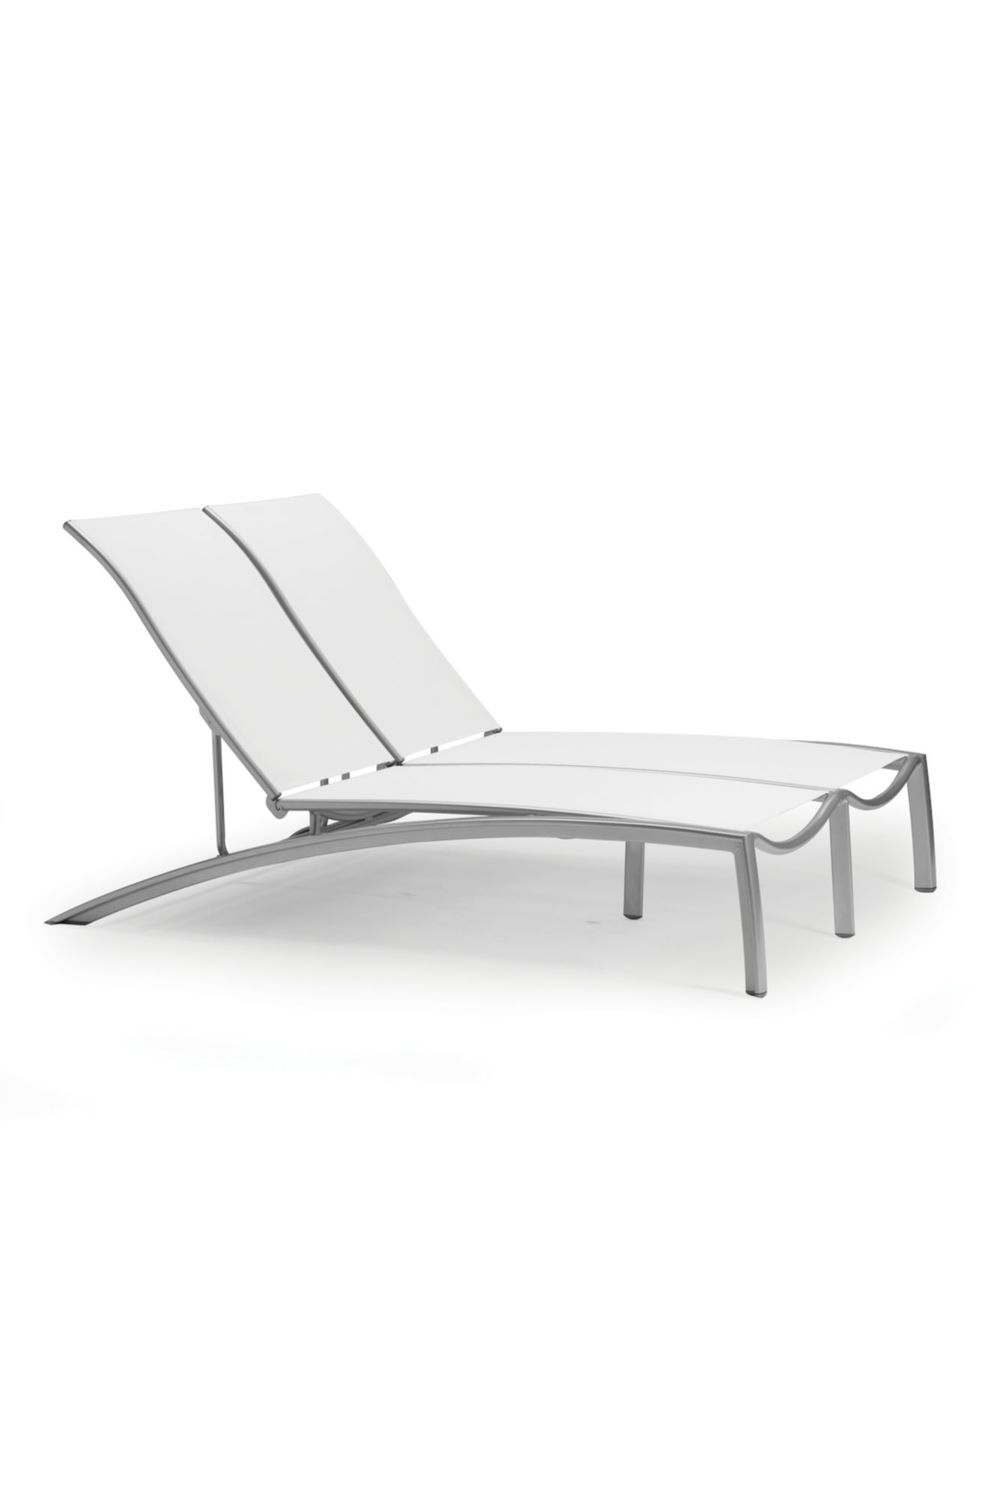 Tropitone Furniture - Double Chaise